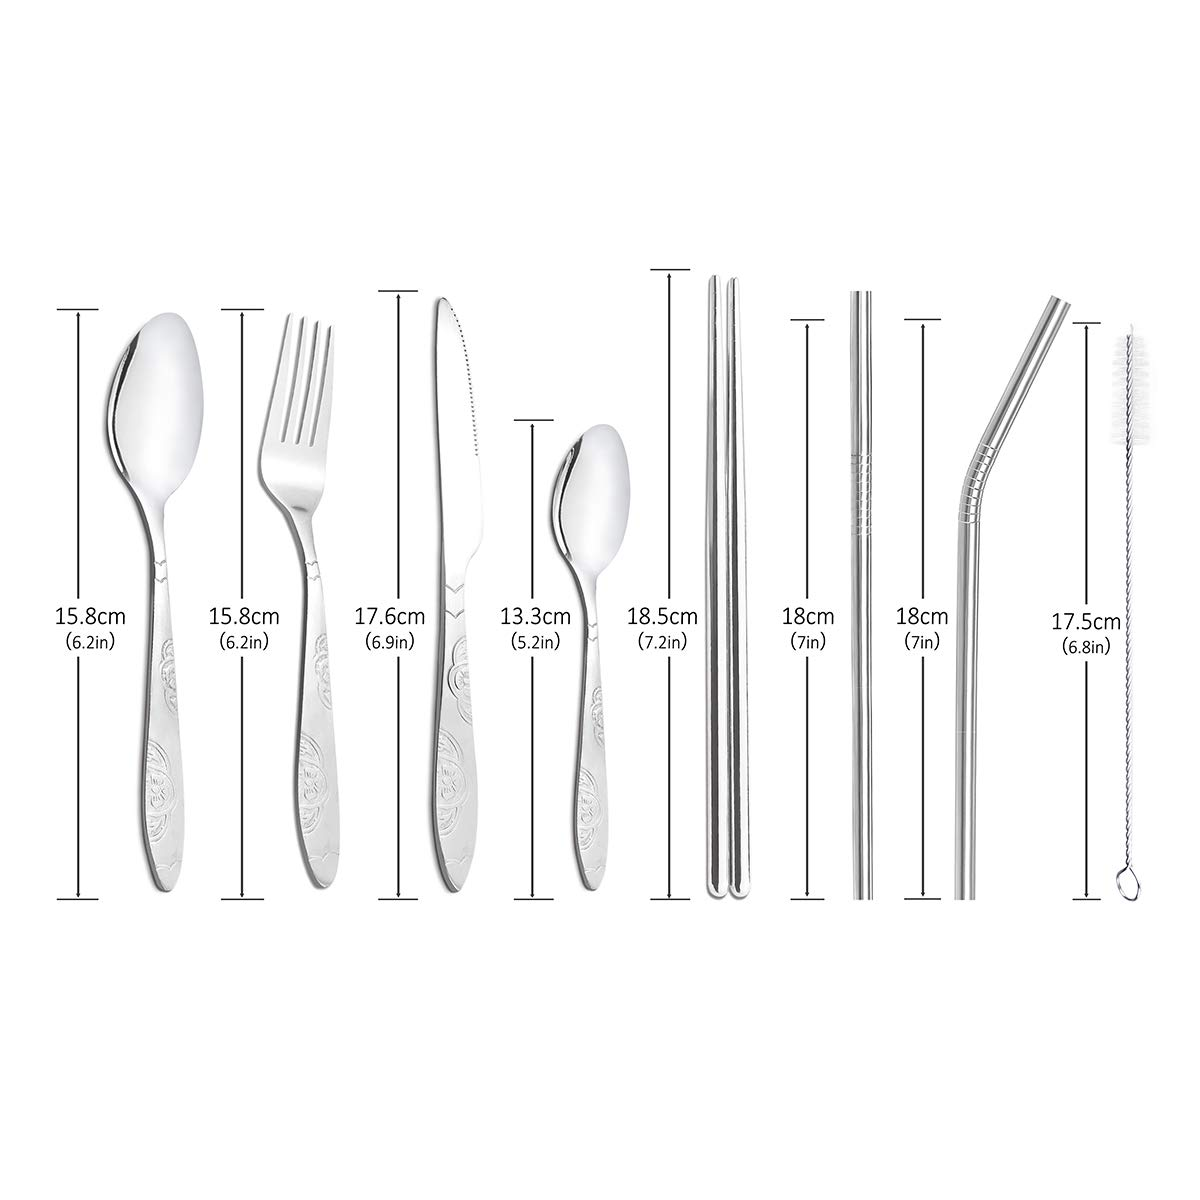 Ackmond Camping Outdoor Utensils Cutlery Flatware Set Of